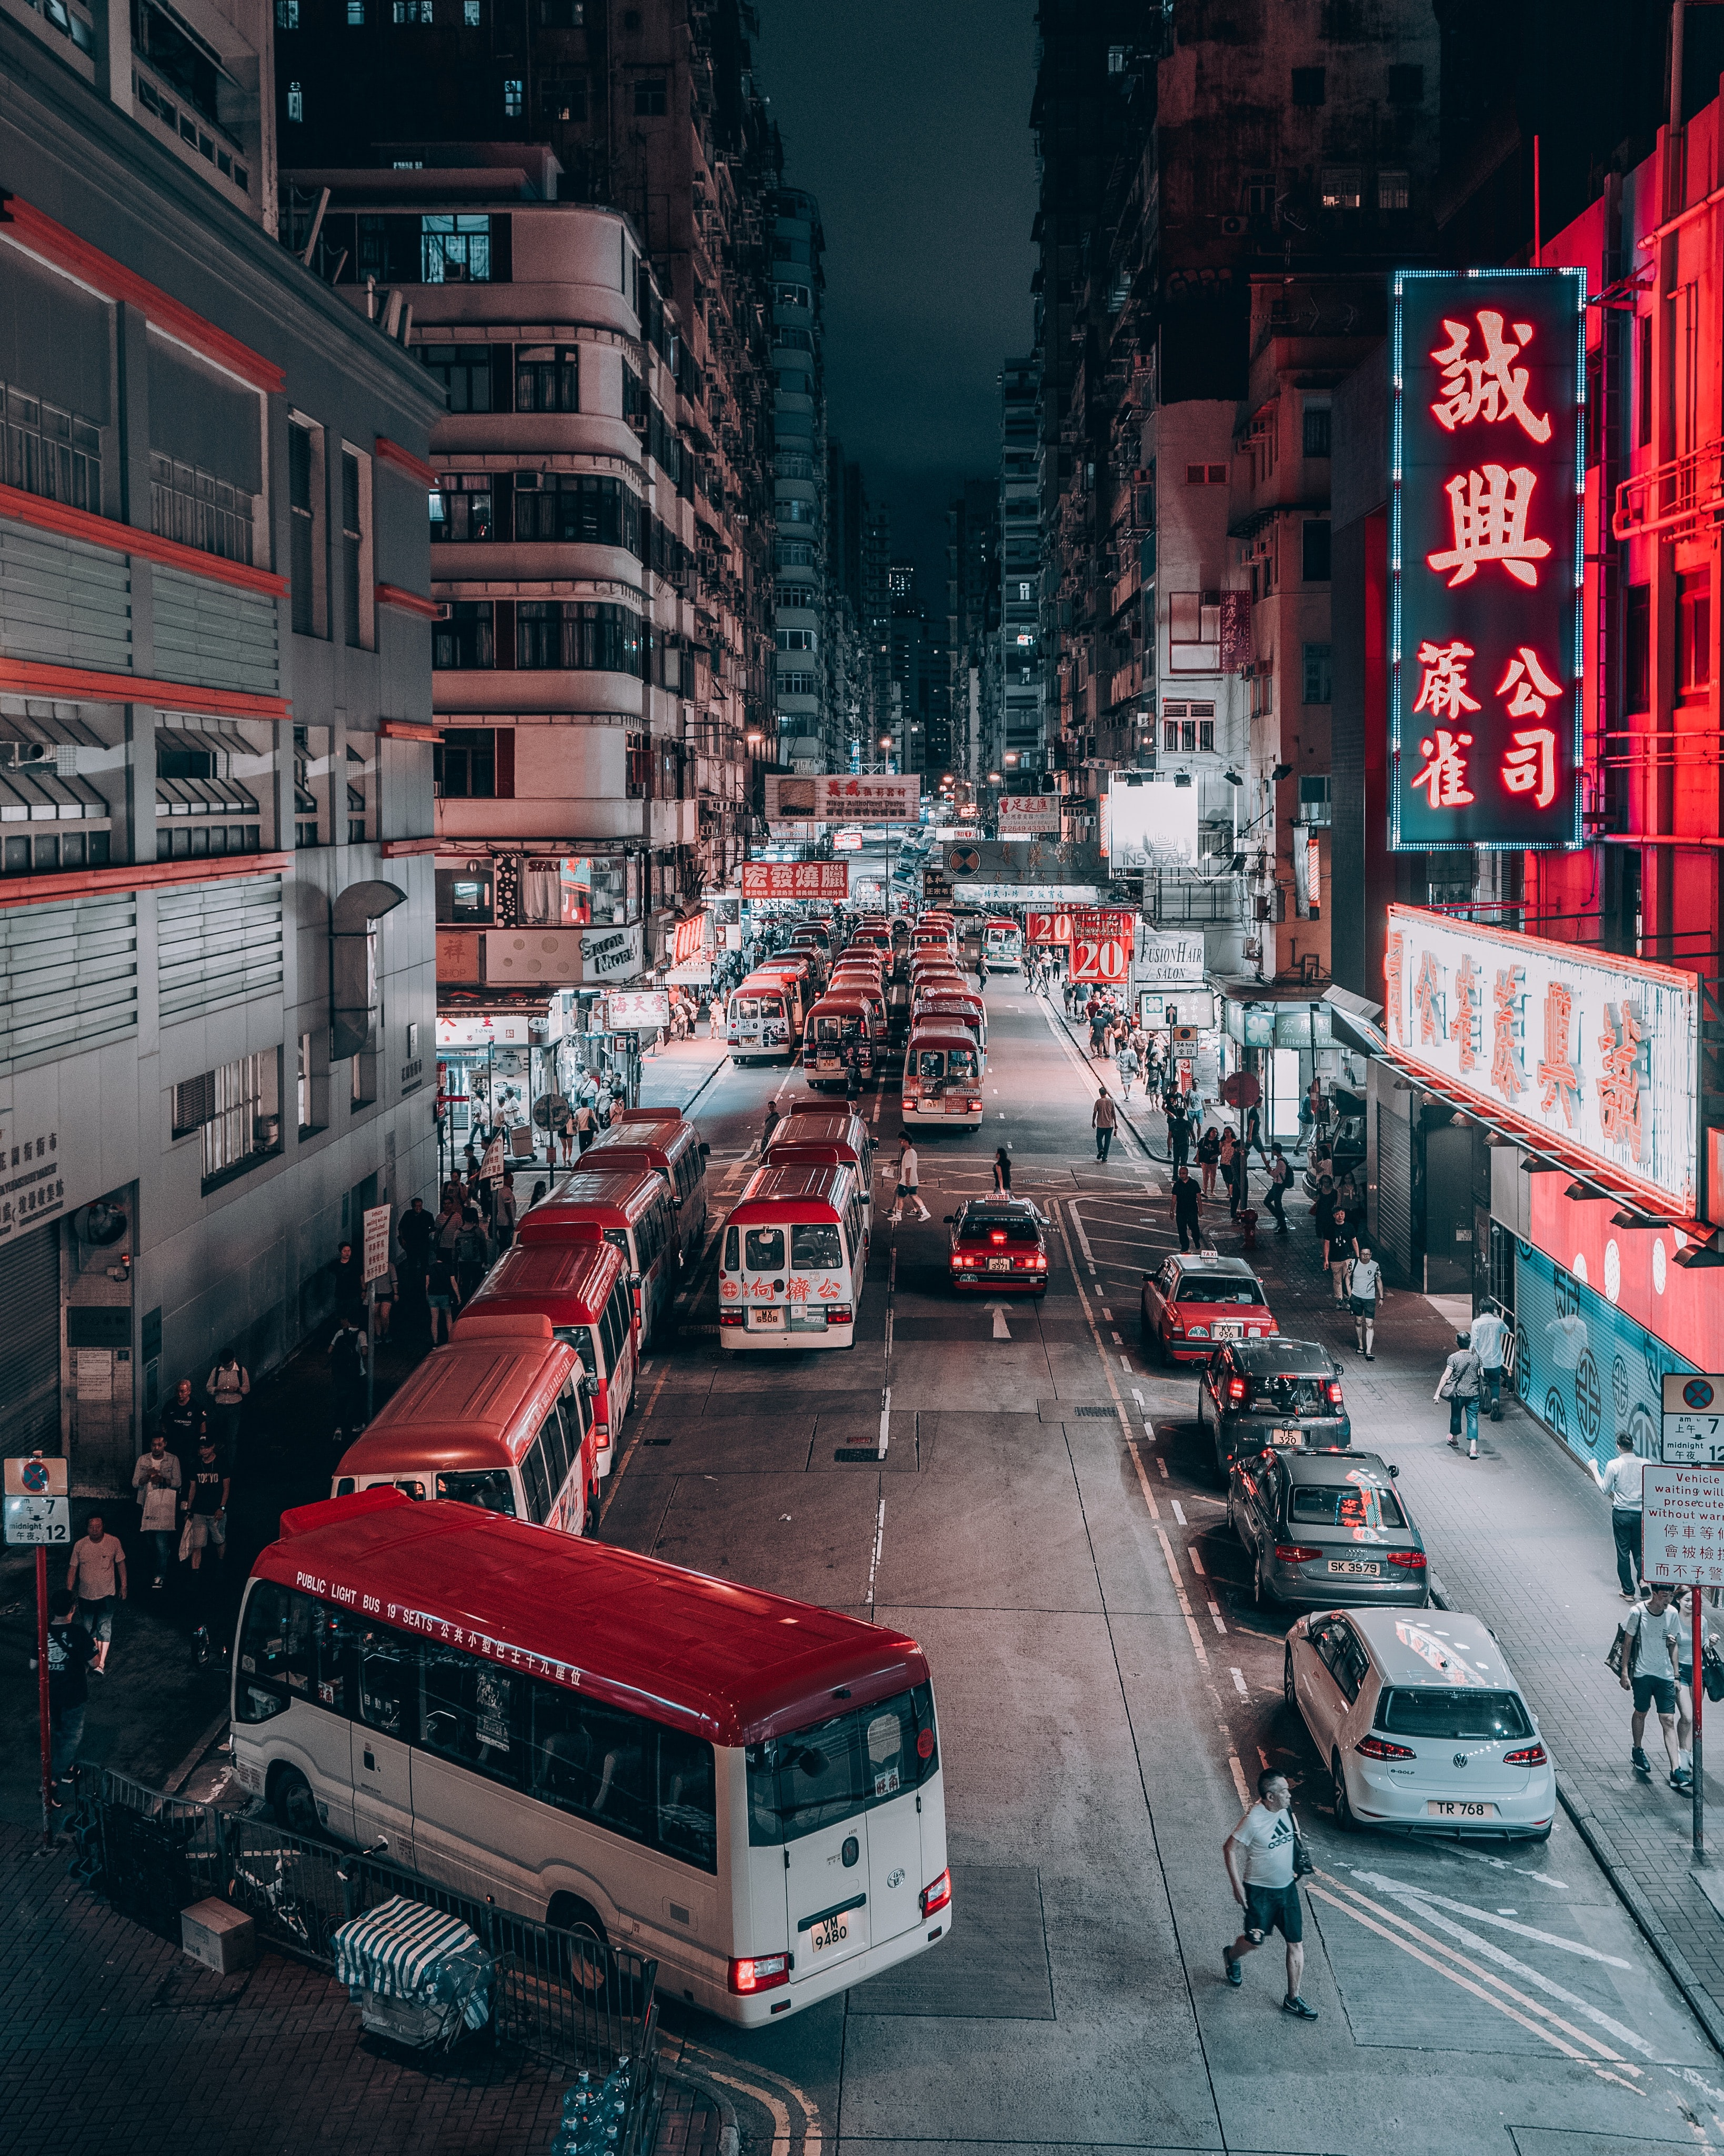 busy street during nighttime